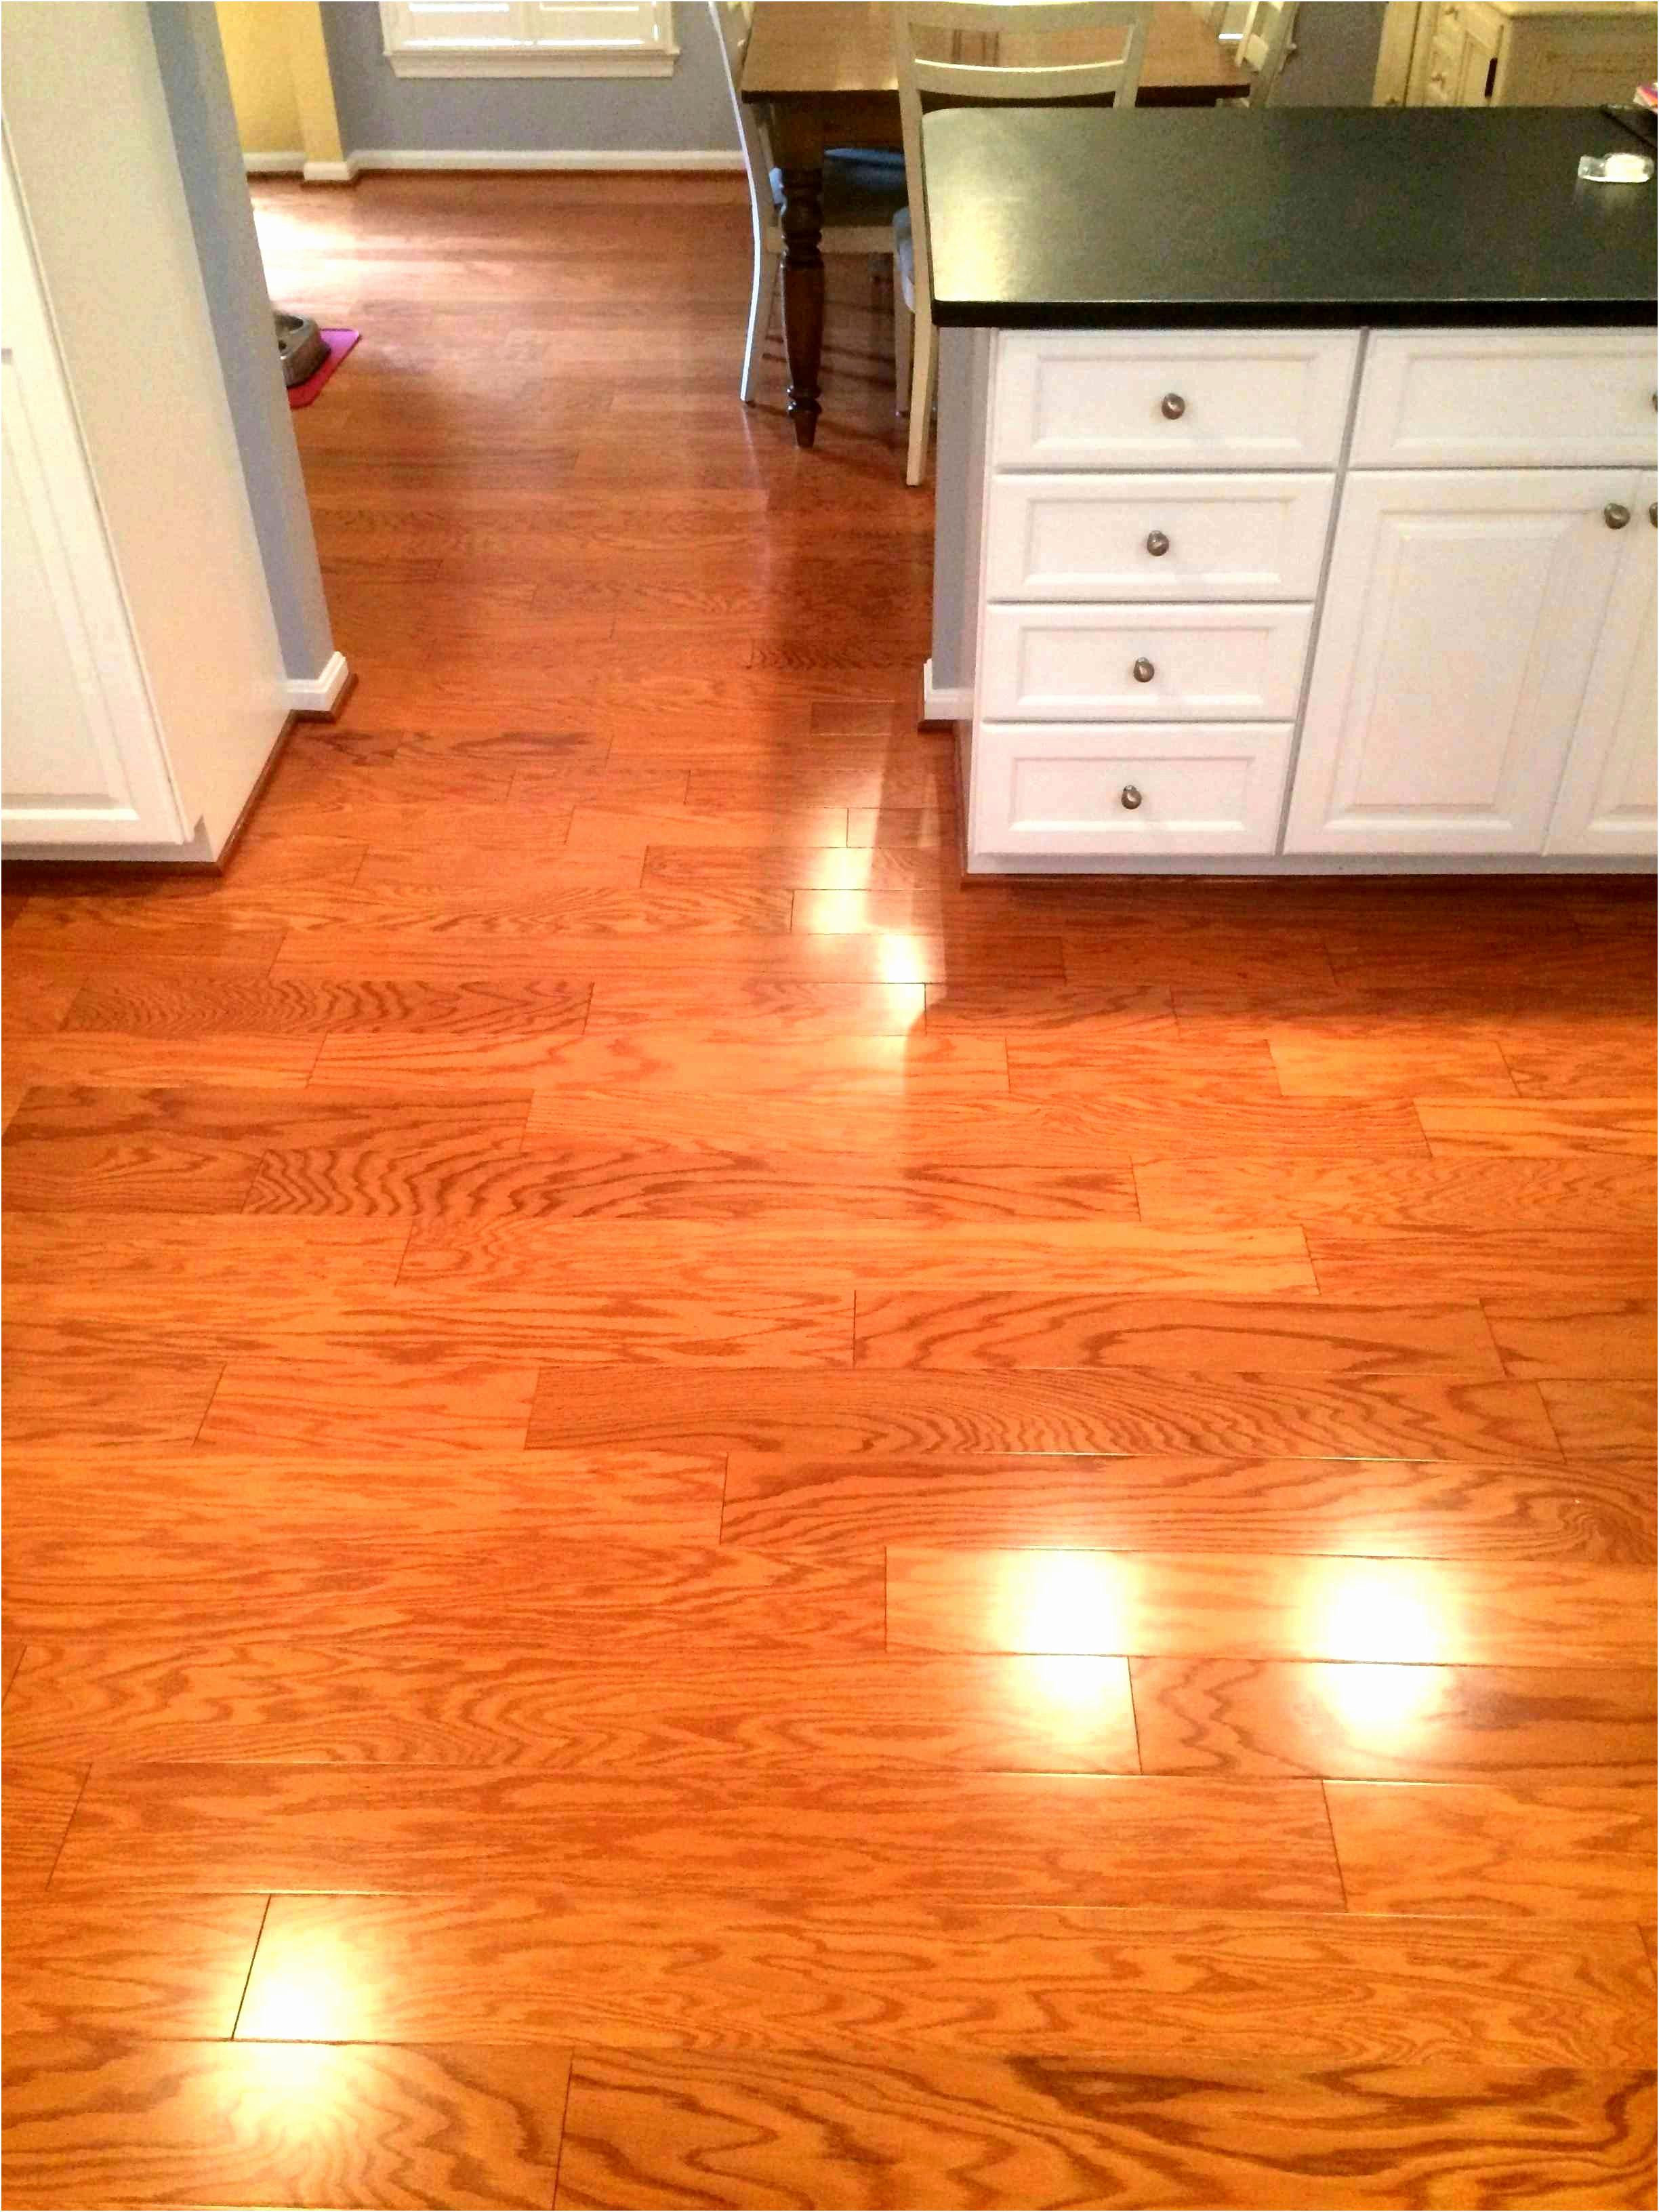 staining hardwood floors after sanding of 10 diy wood flooring collections economyinnbeebe com for bruce flooring best where to hardwood flooring inspirational 0d grace place barnegat